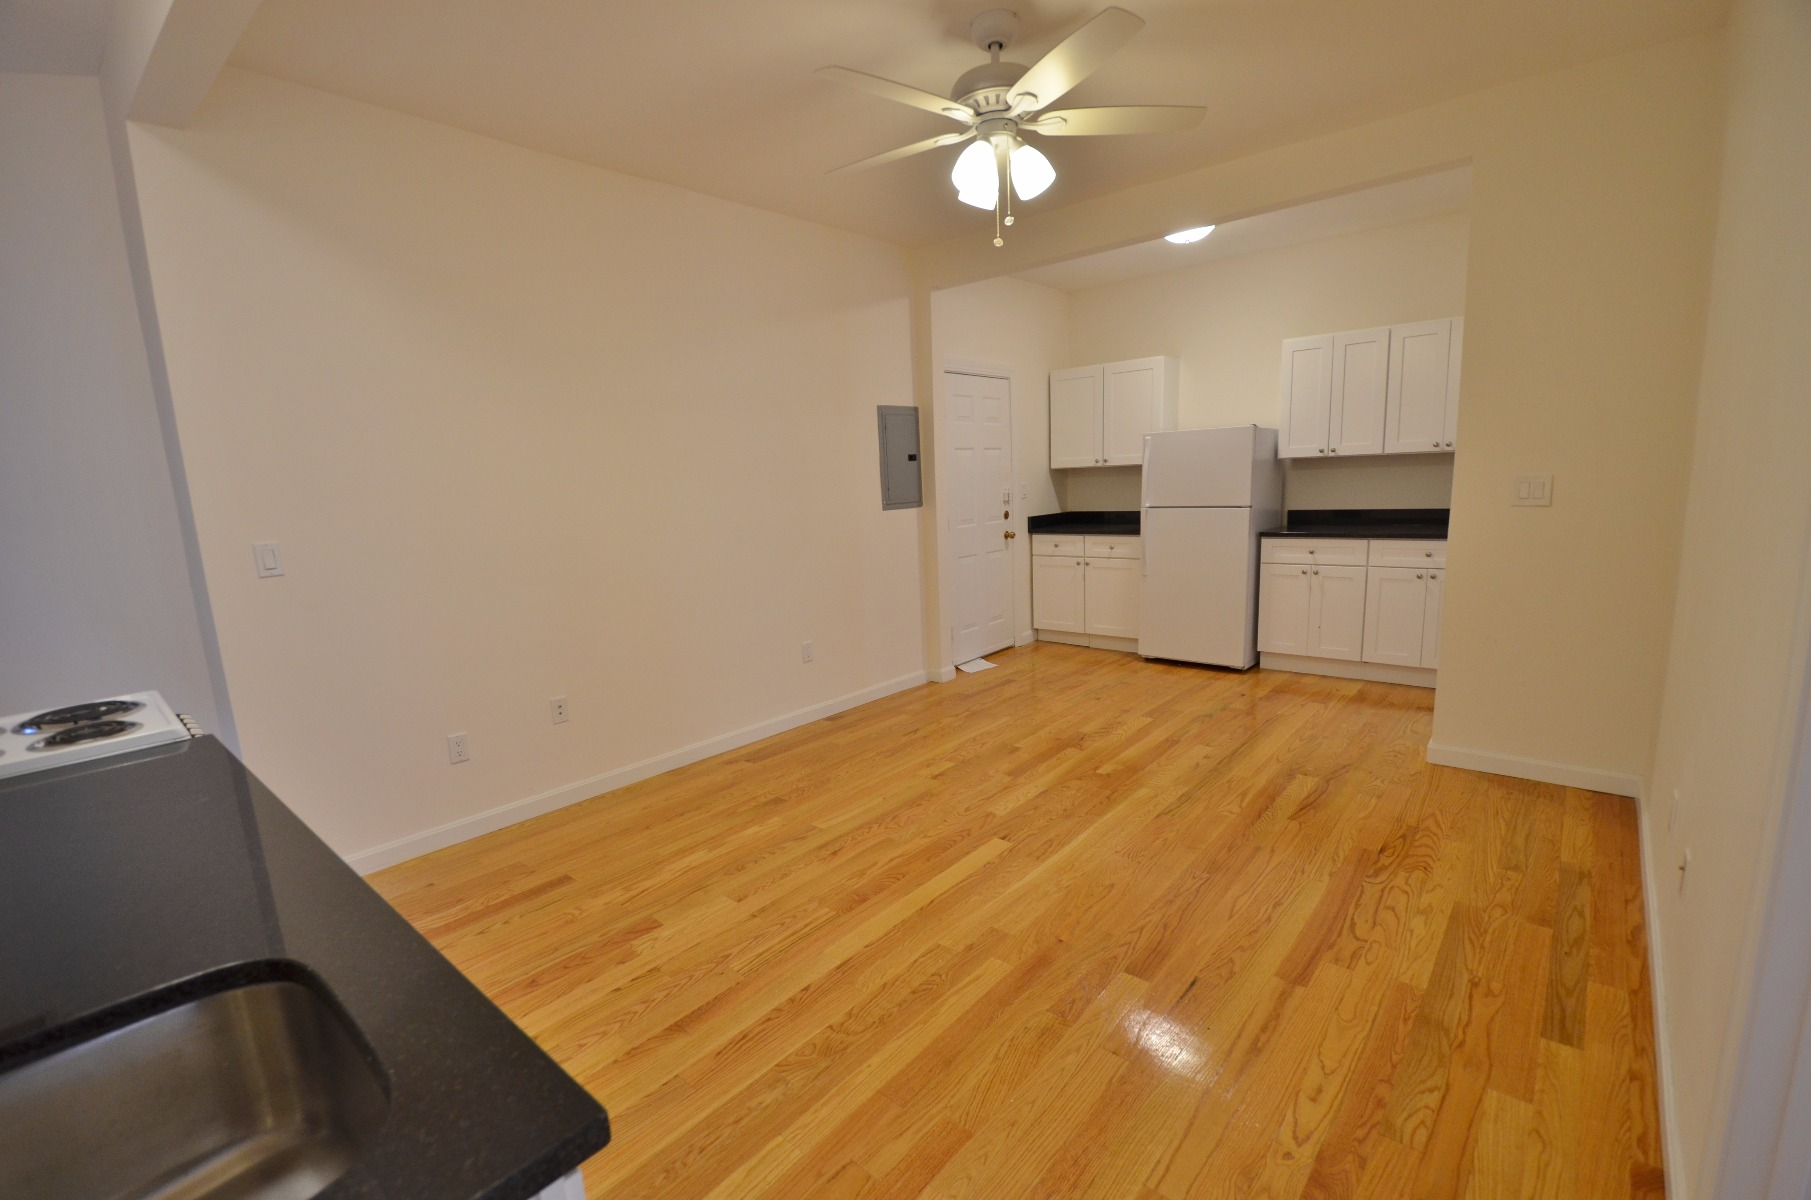 DON'T LET THIS ONE GO! 2bd, 1bath, Westland Ave, 9/1